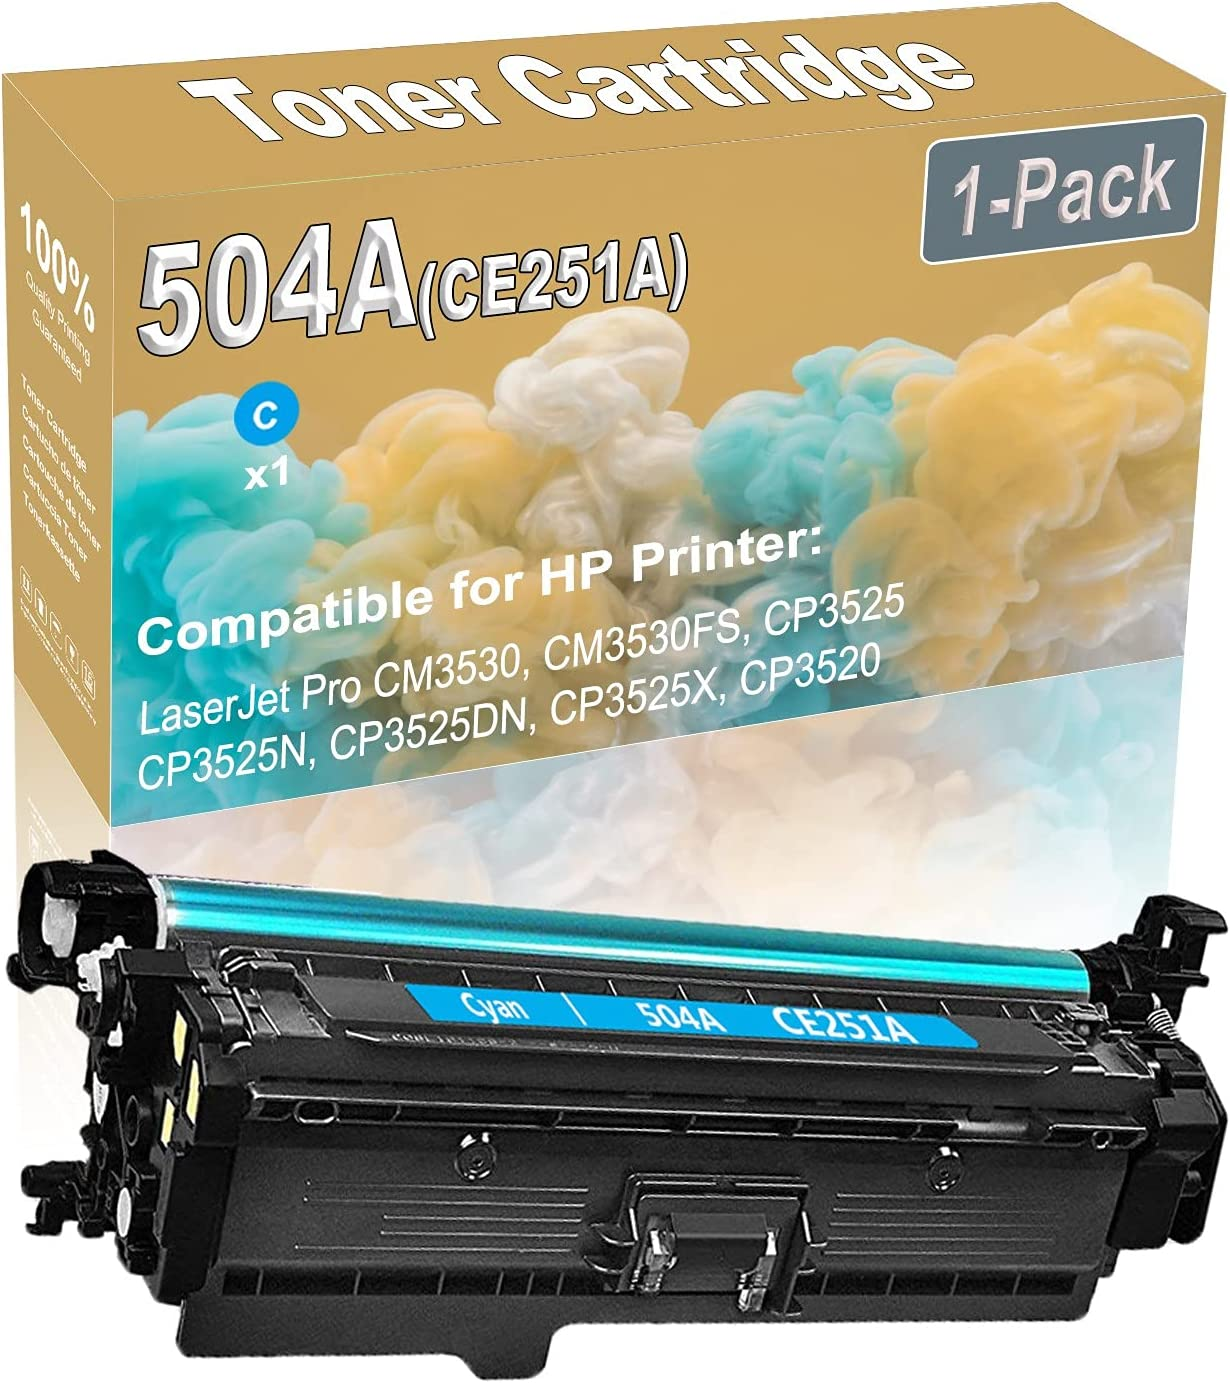 1-Pack (Cyan) Compatible High Yield 504A (CE251A) Printer Toner Cartridge use for HP CM3530 CM3530FS Printers